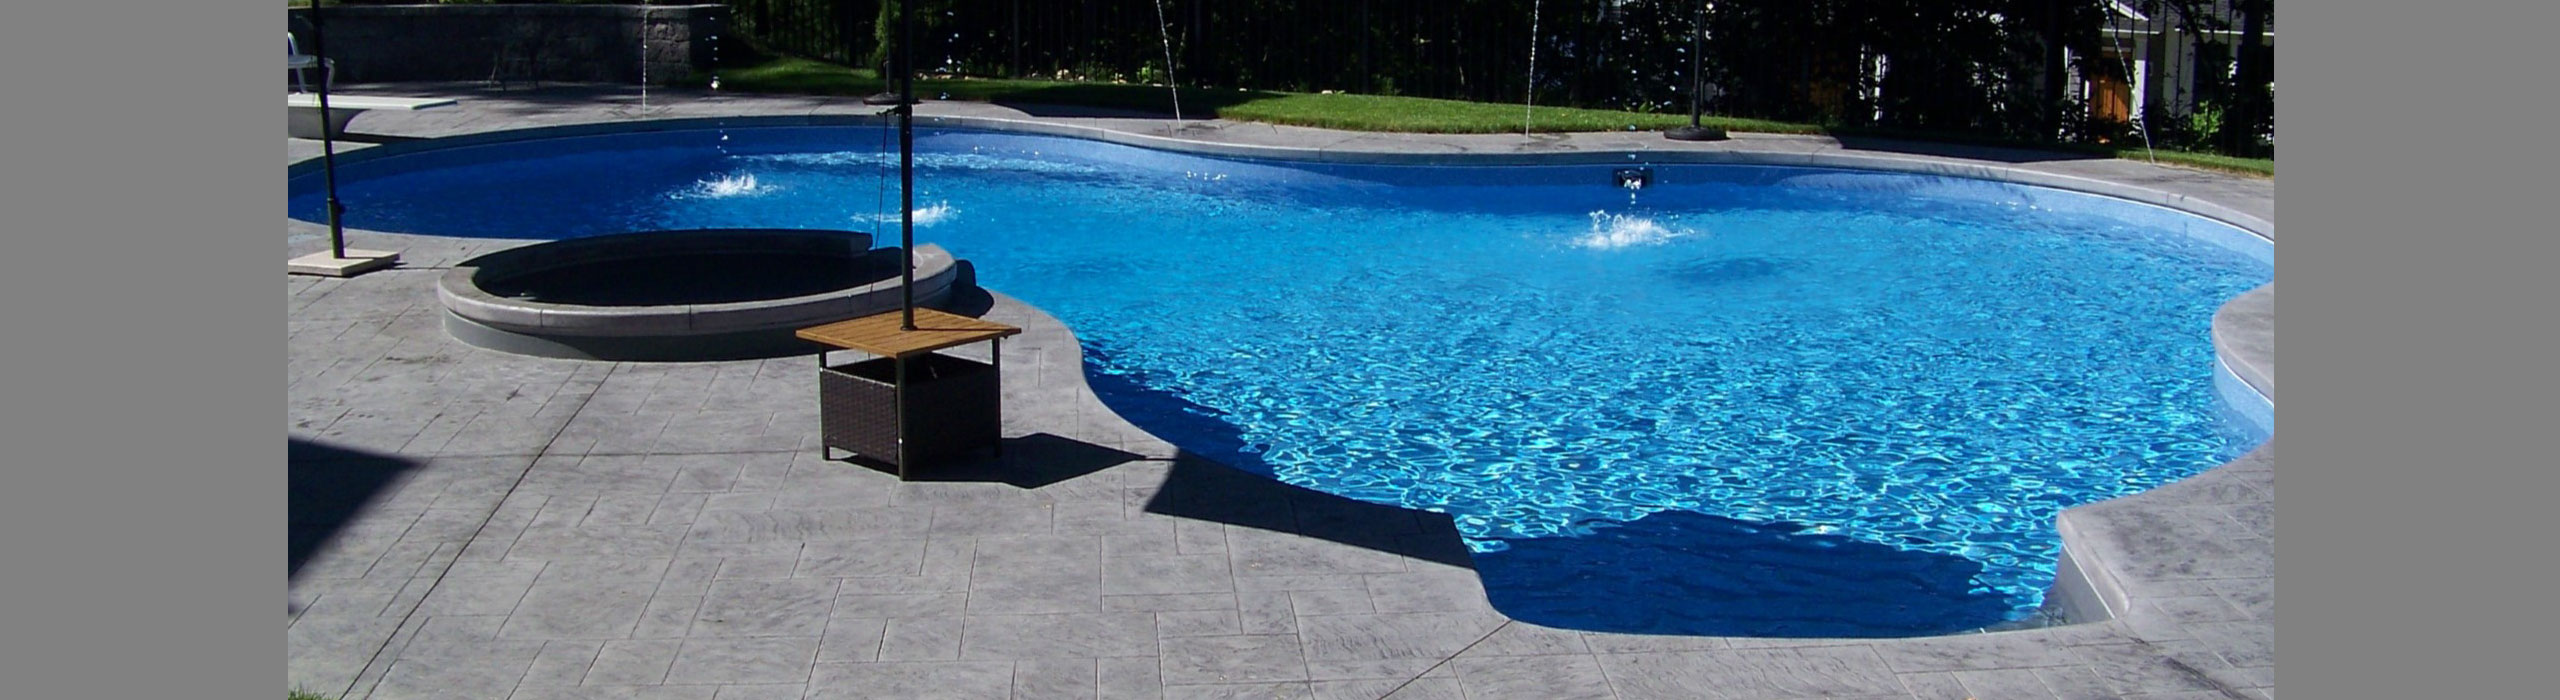 In ground pools above ground pools spas and hot tubs for Above ground pool decks with hot tub